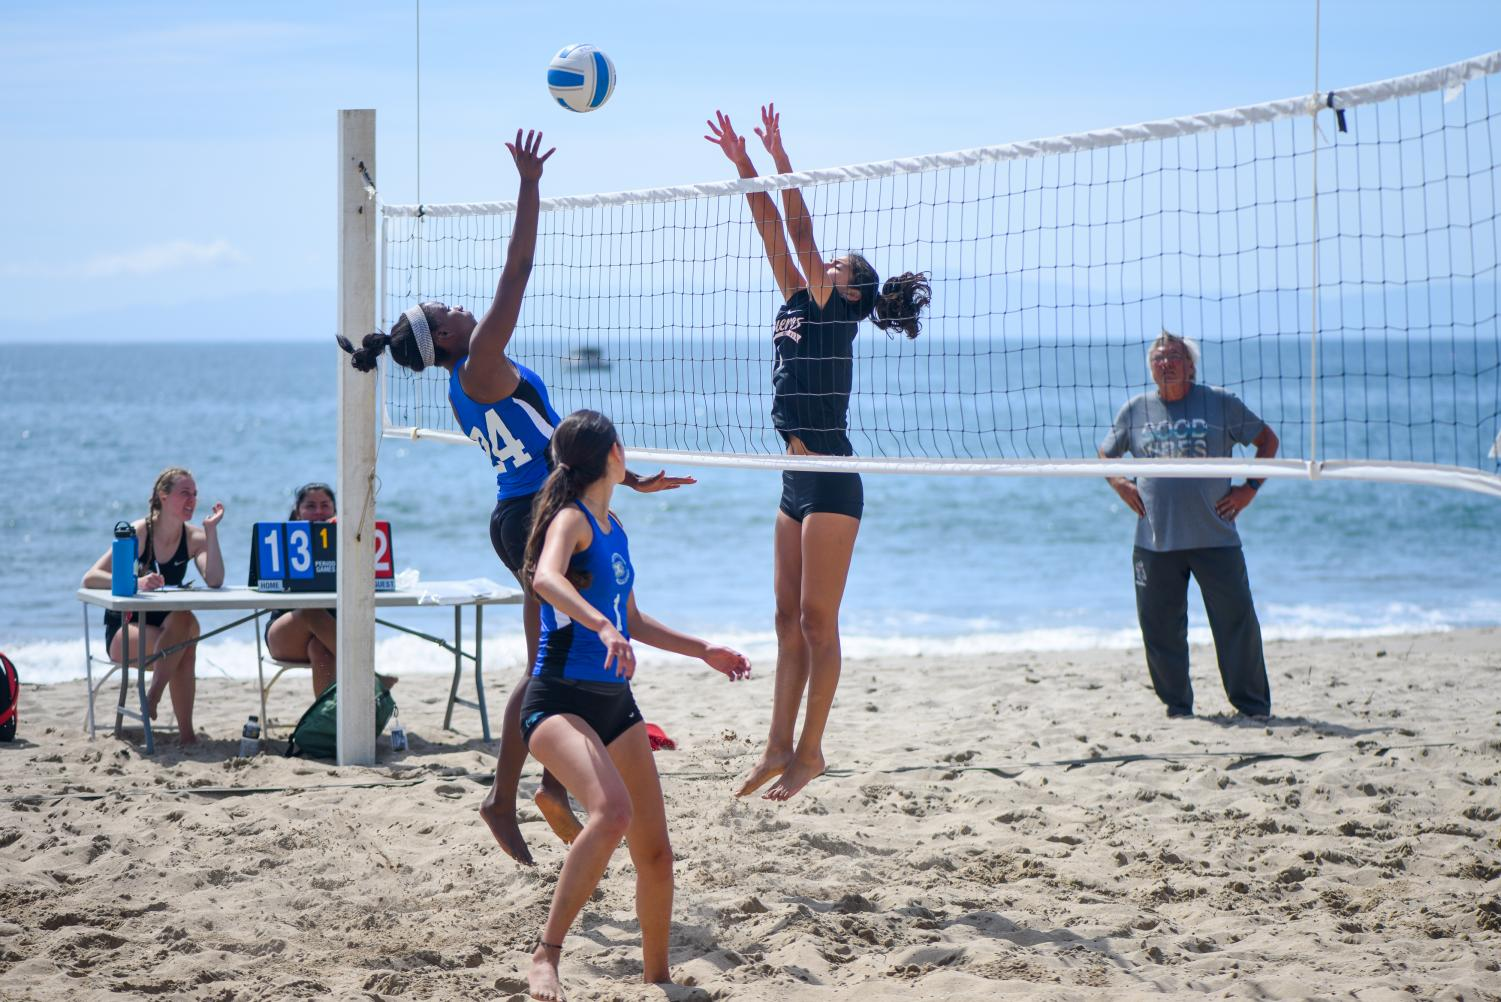 Brianna Montgomery (No. 24) hits the ball to Jacque Oregon (No.7) on Friday, March 22, 2019, at East Beach in Santa Barbara, Calif. The Vaqueros lost this set 21-5.